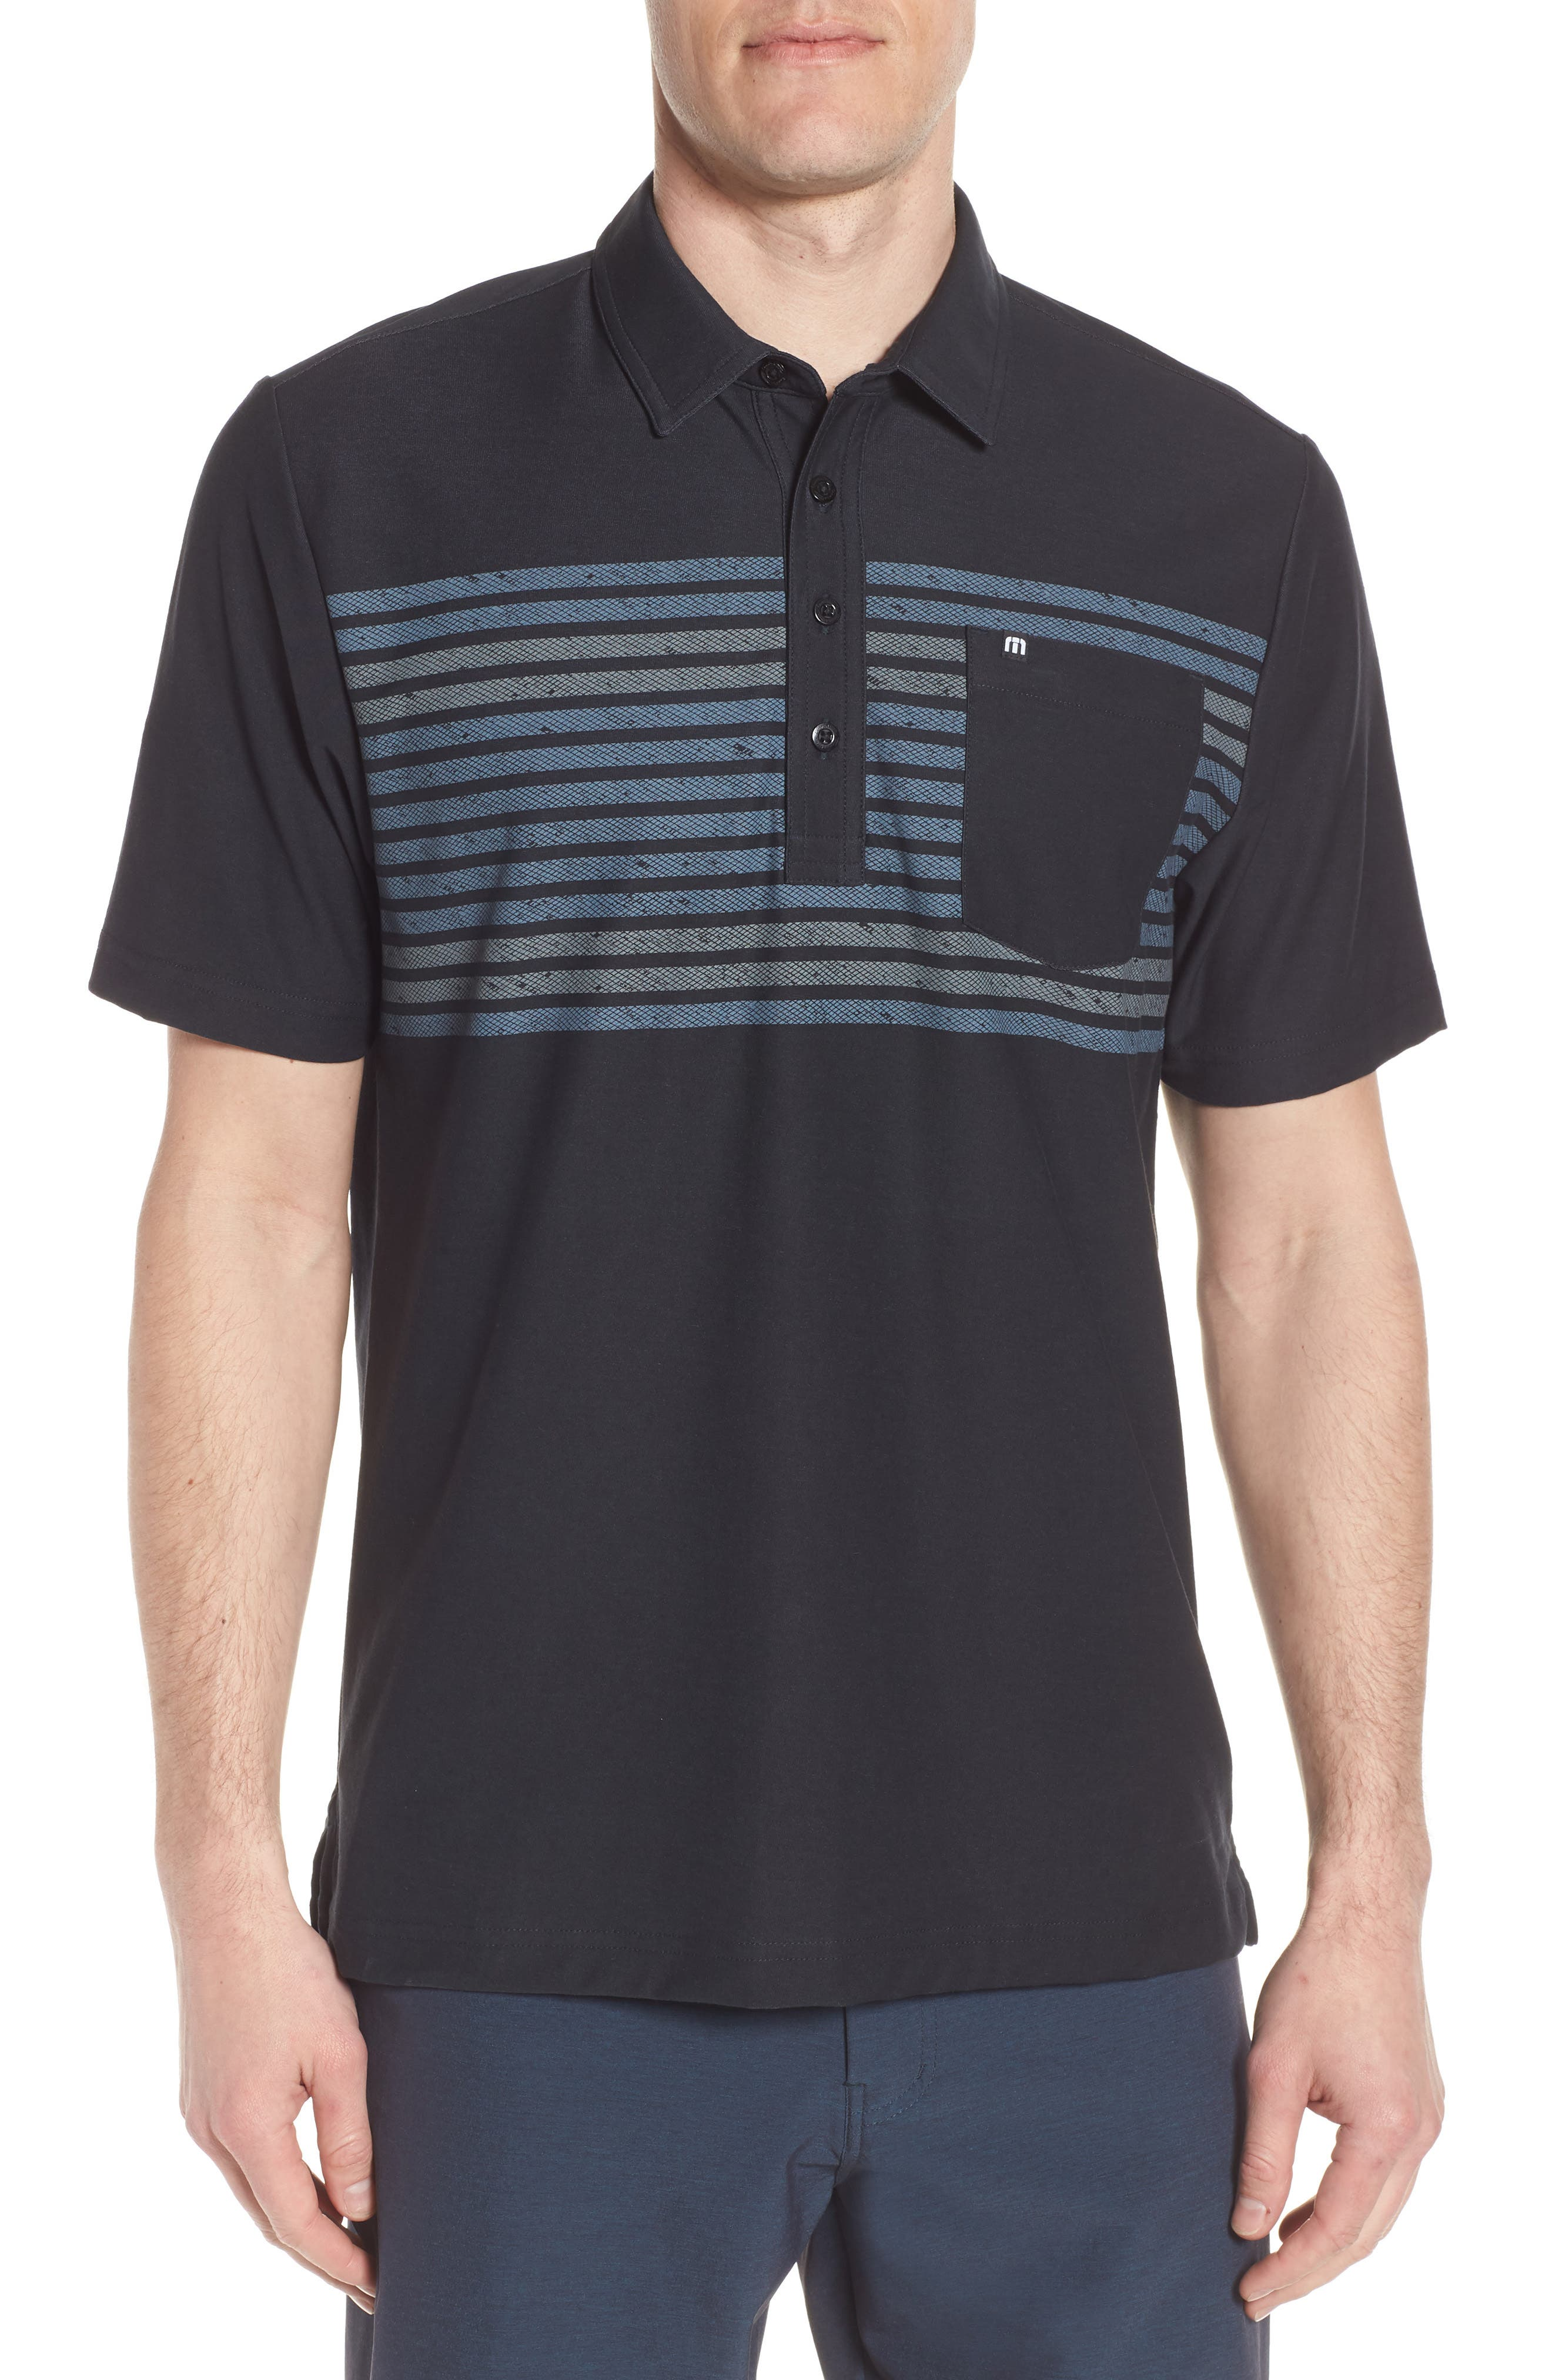 Sweet Lu Regular Fit Polo,                         Main,                         color, BLACK/ GRISAILLE